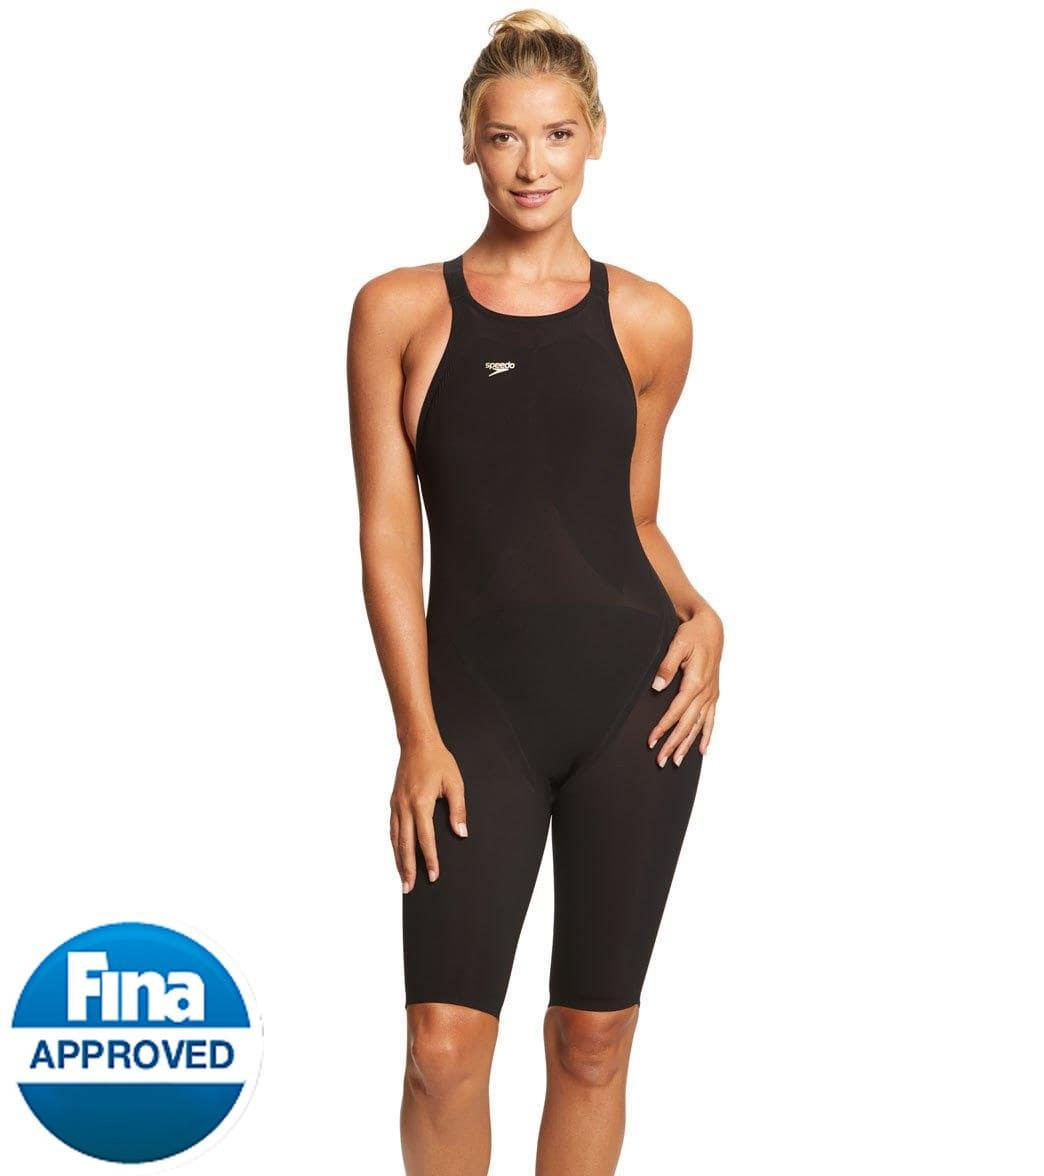 56d2ca3c1fbac Speedo LZR Racer Elite 2 Closed Back Kneeskin Tech Suit Swimsuit at  SwimOutlet.com - Free Shipping